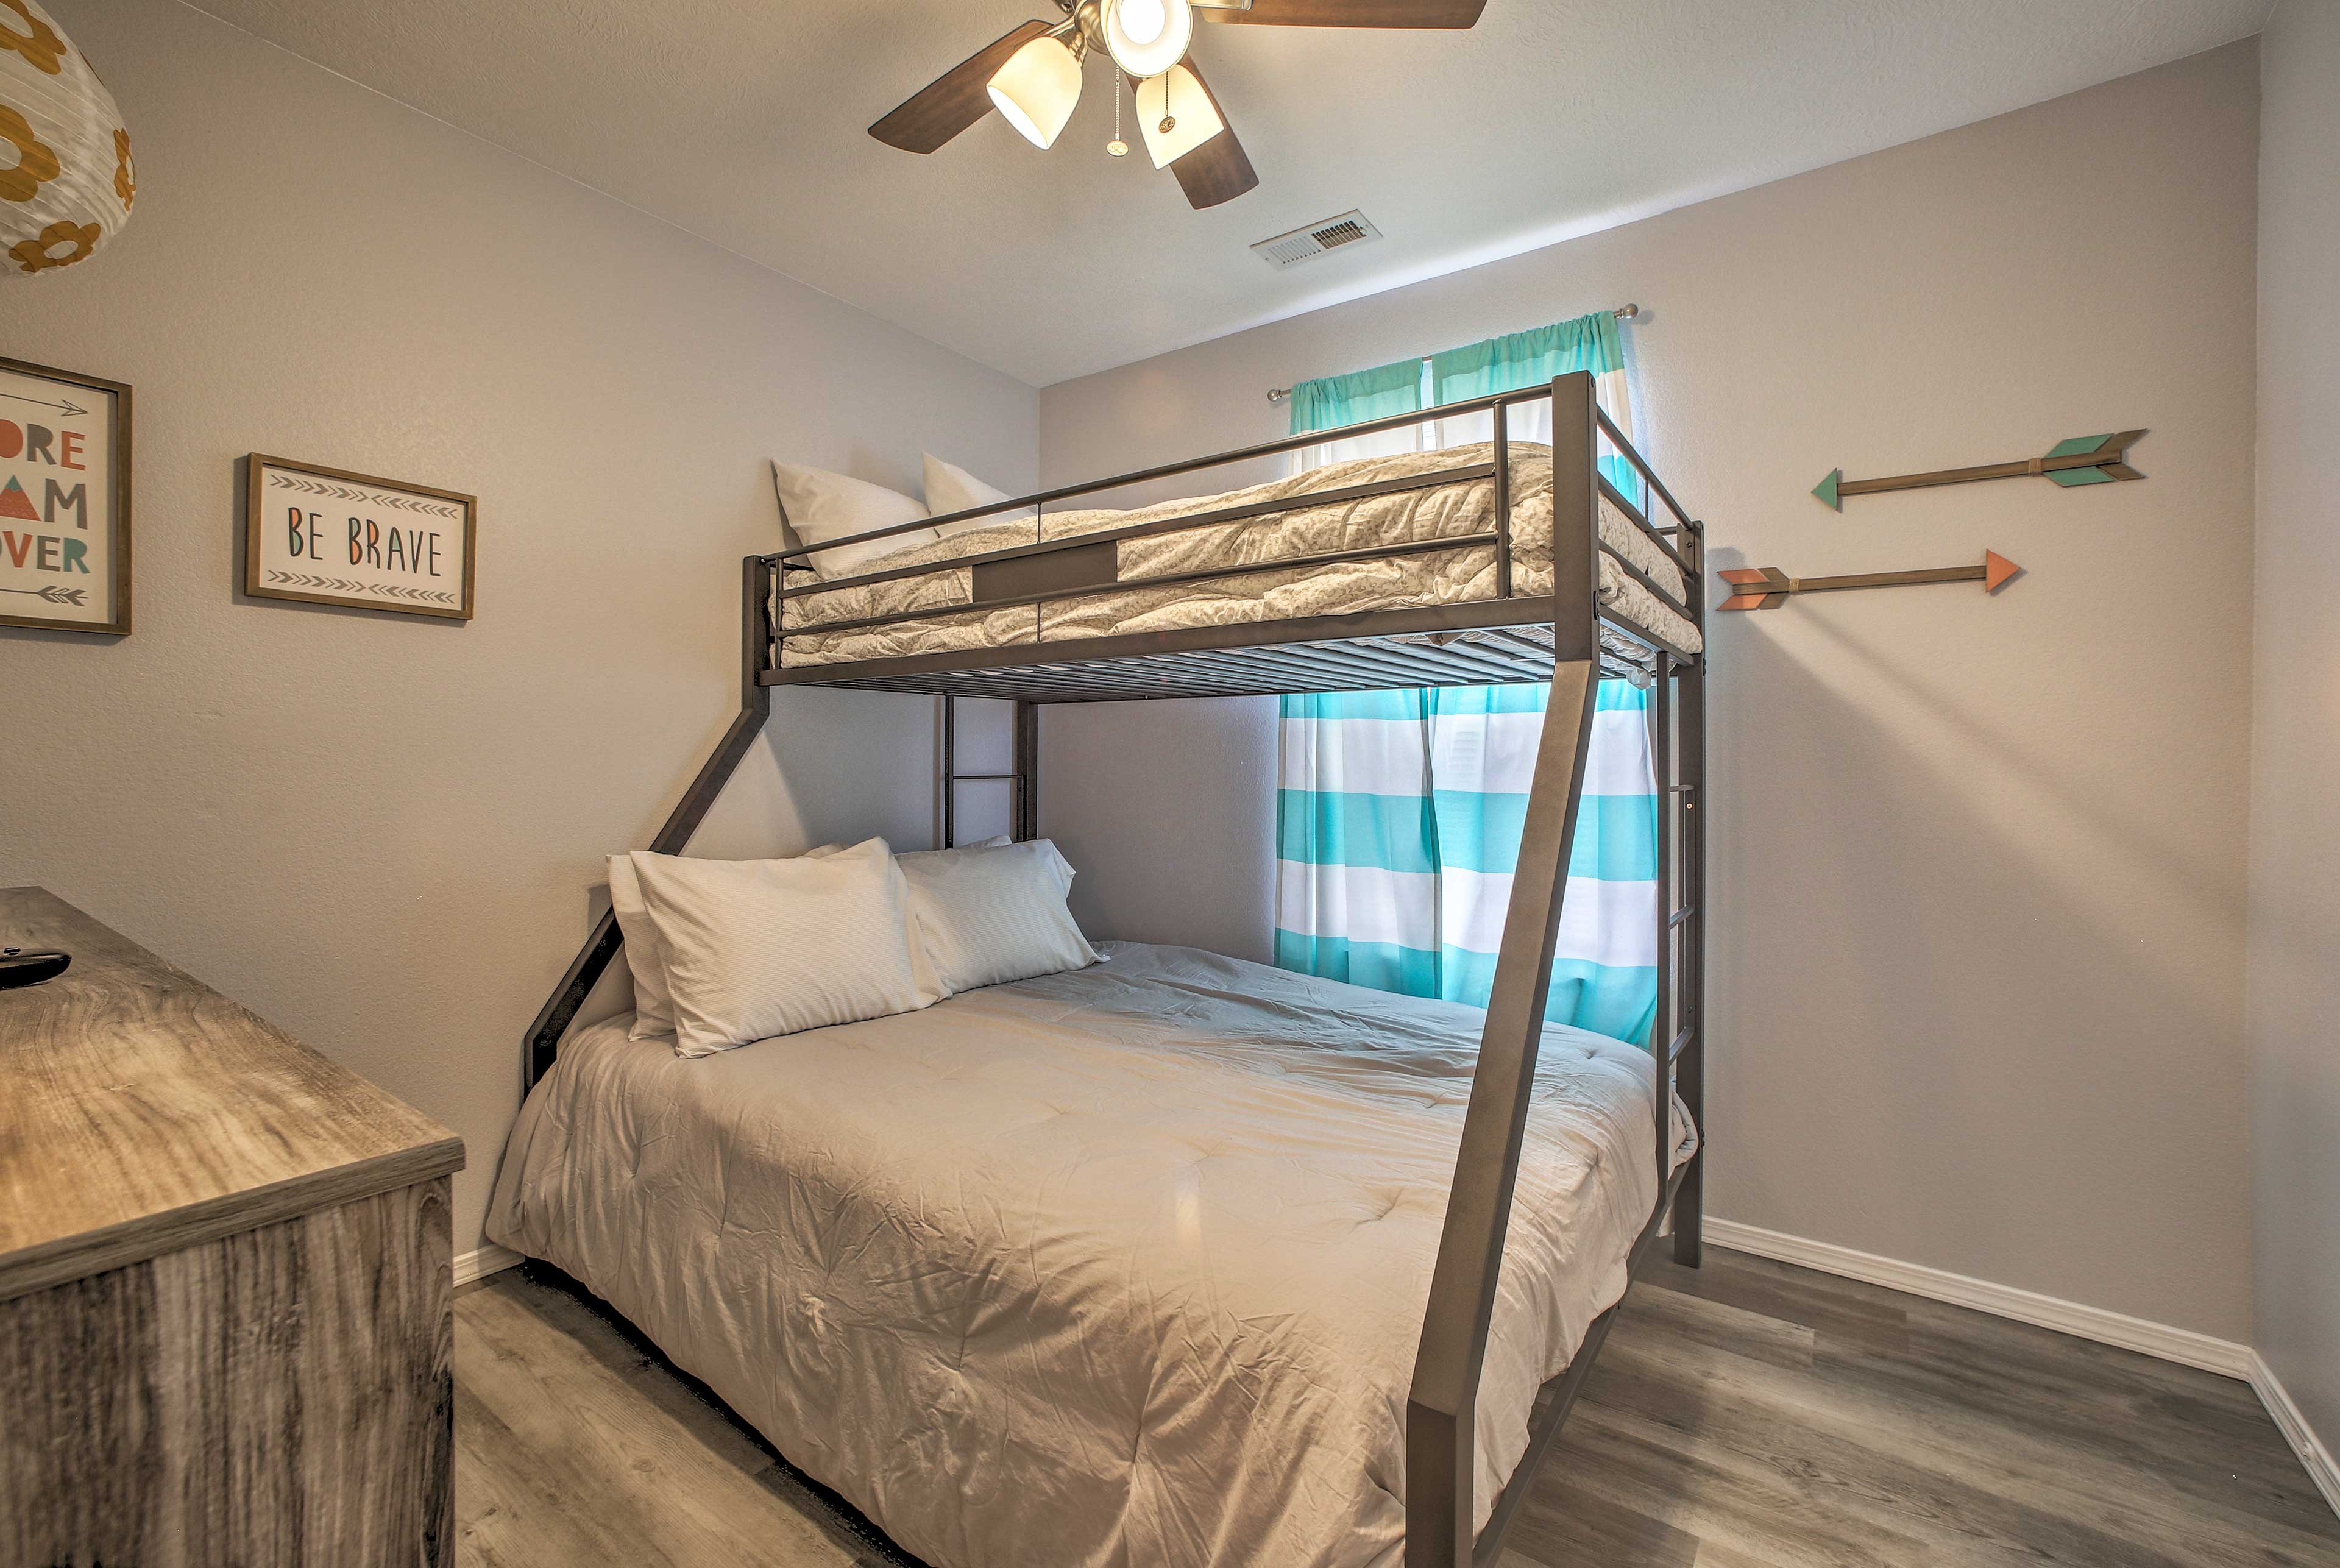 The third bedroom houses a twin-over-queen bunk bed.